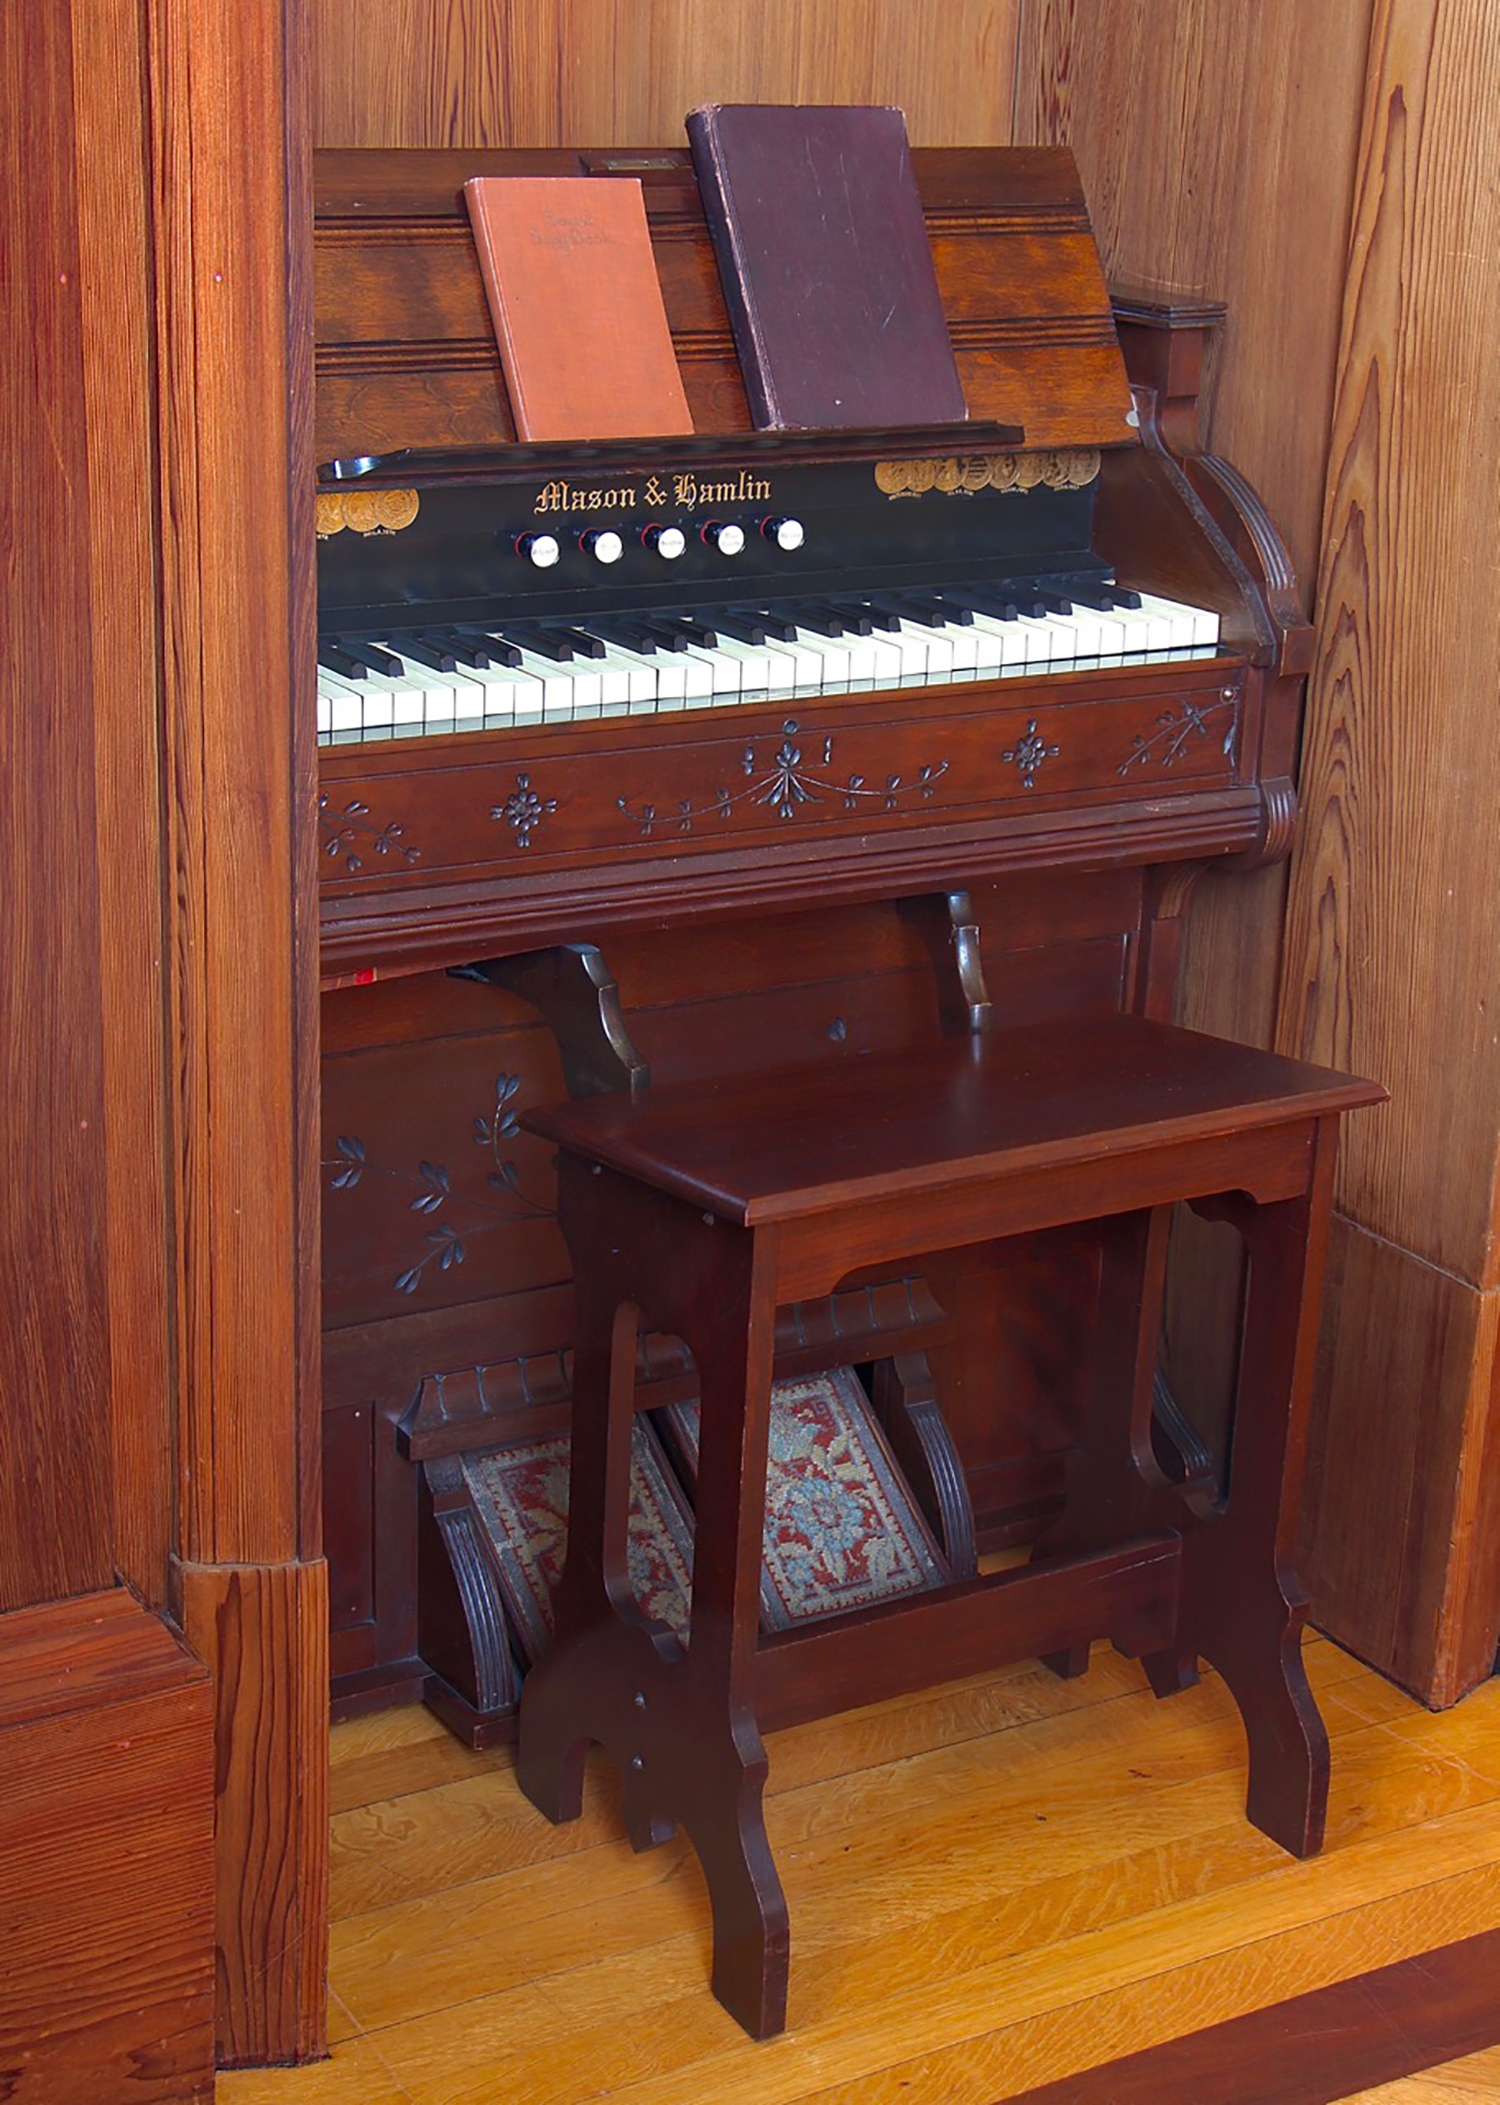 Figure 5: The chapel was designed with a special niche to accommodate the Mason & Hamlin reed organ.